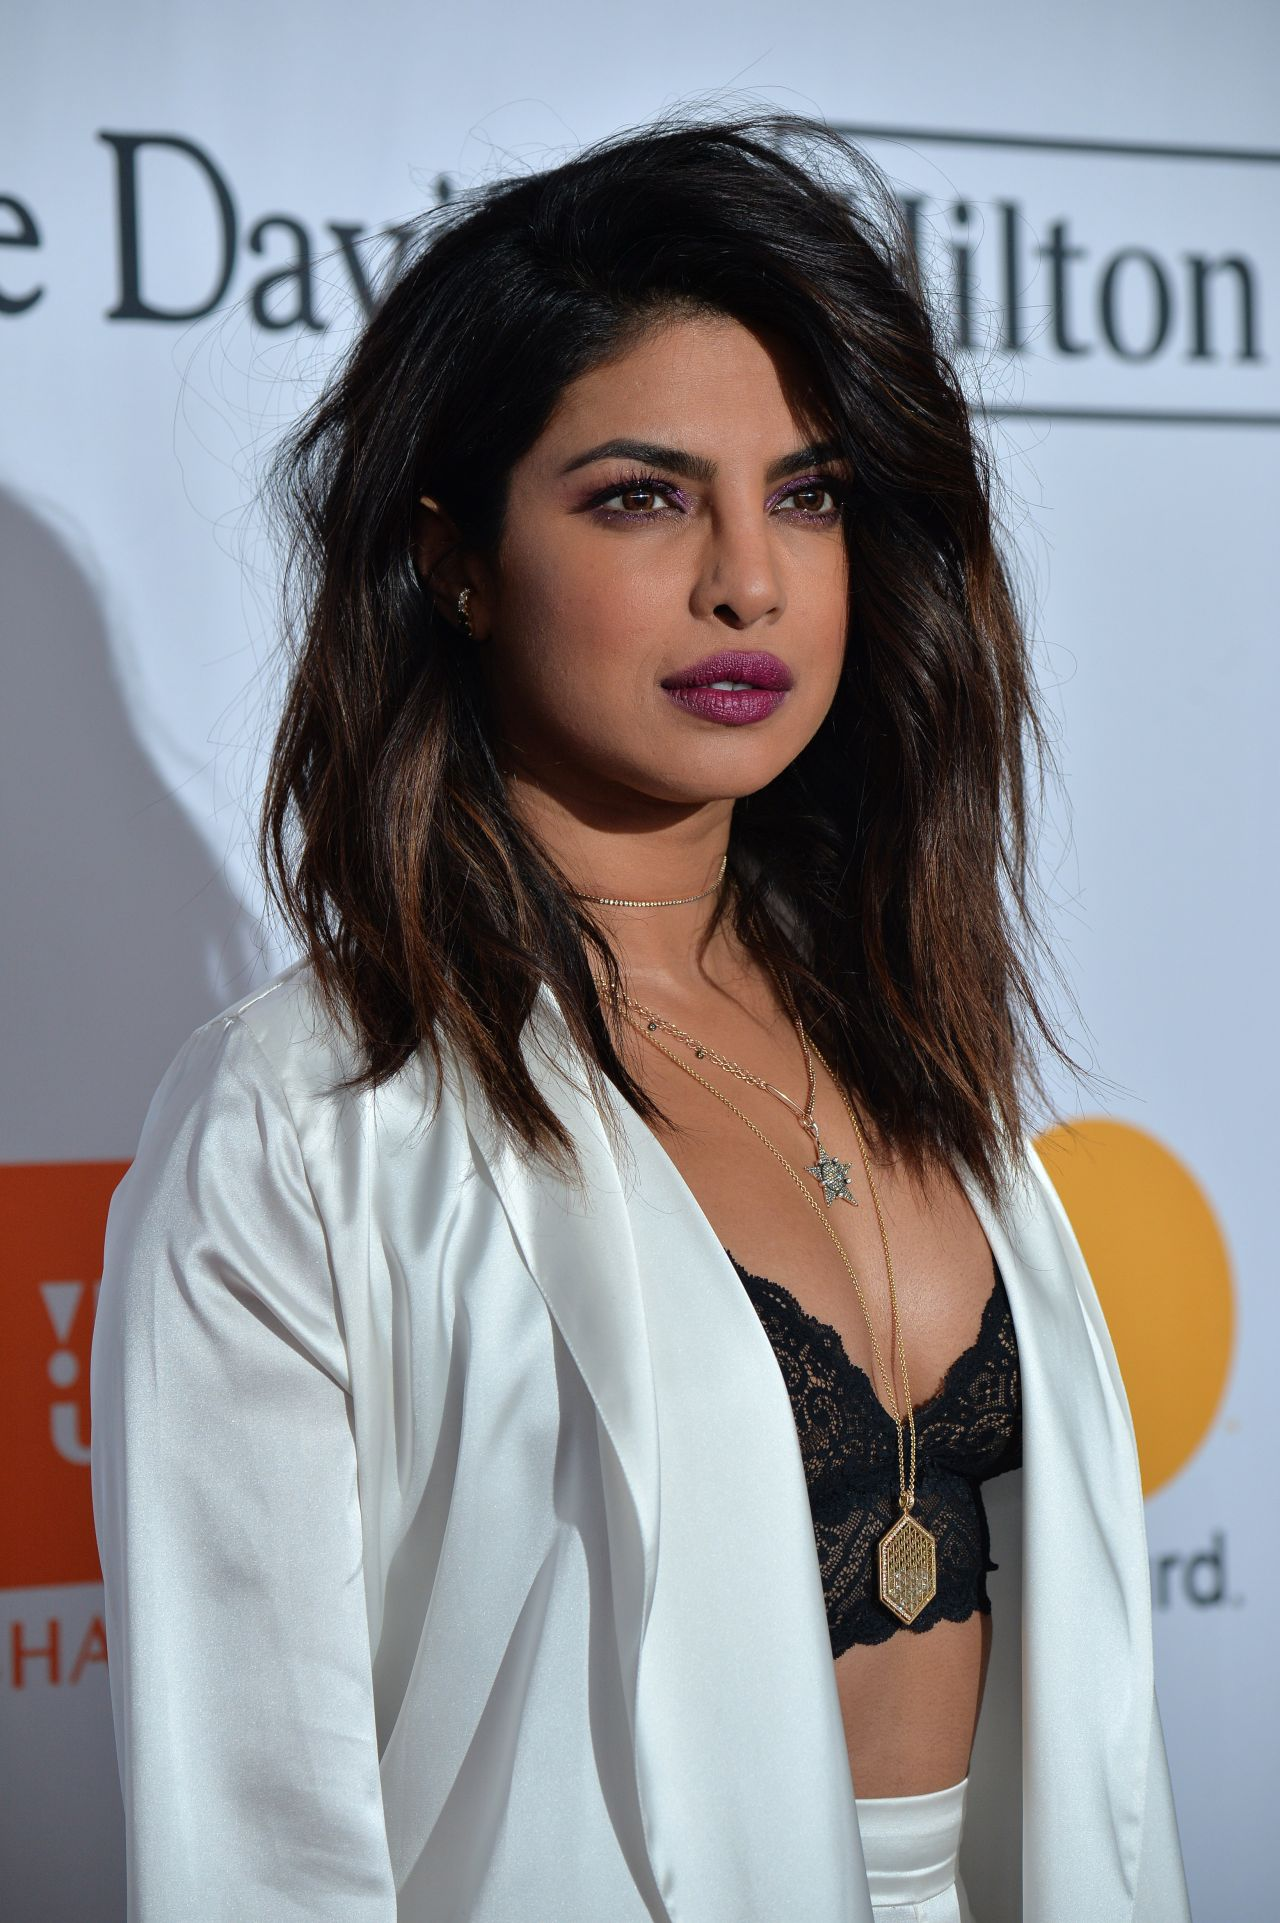 priyanka chopra - photo #16